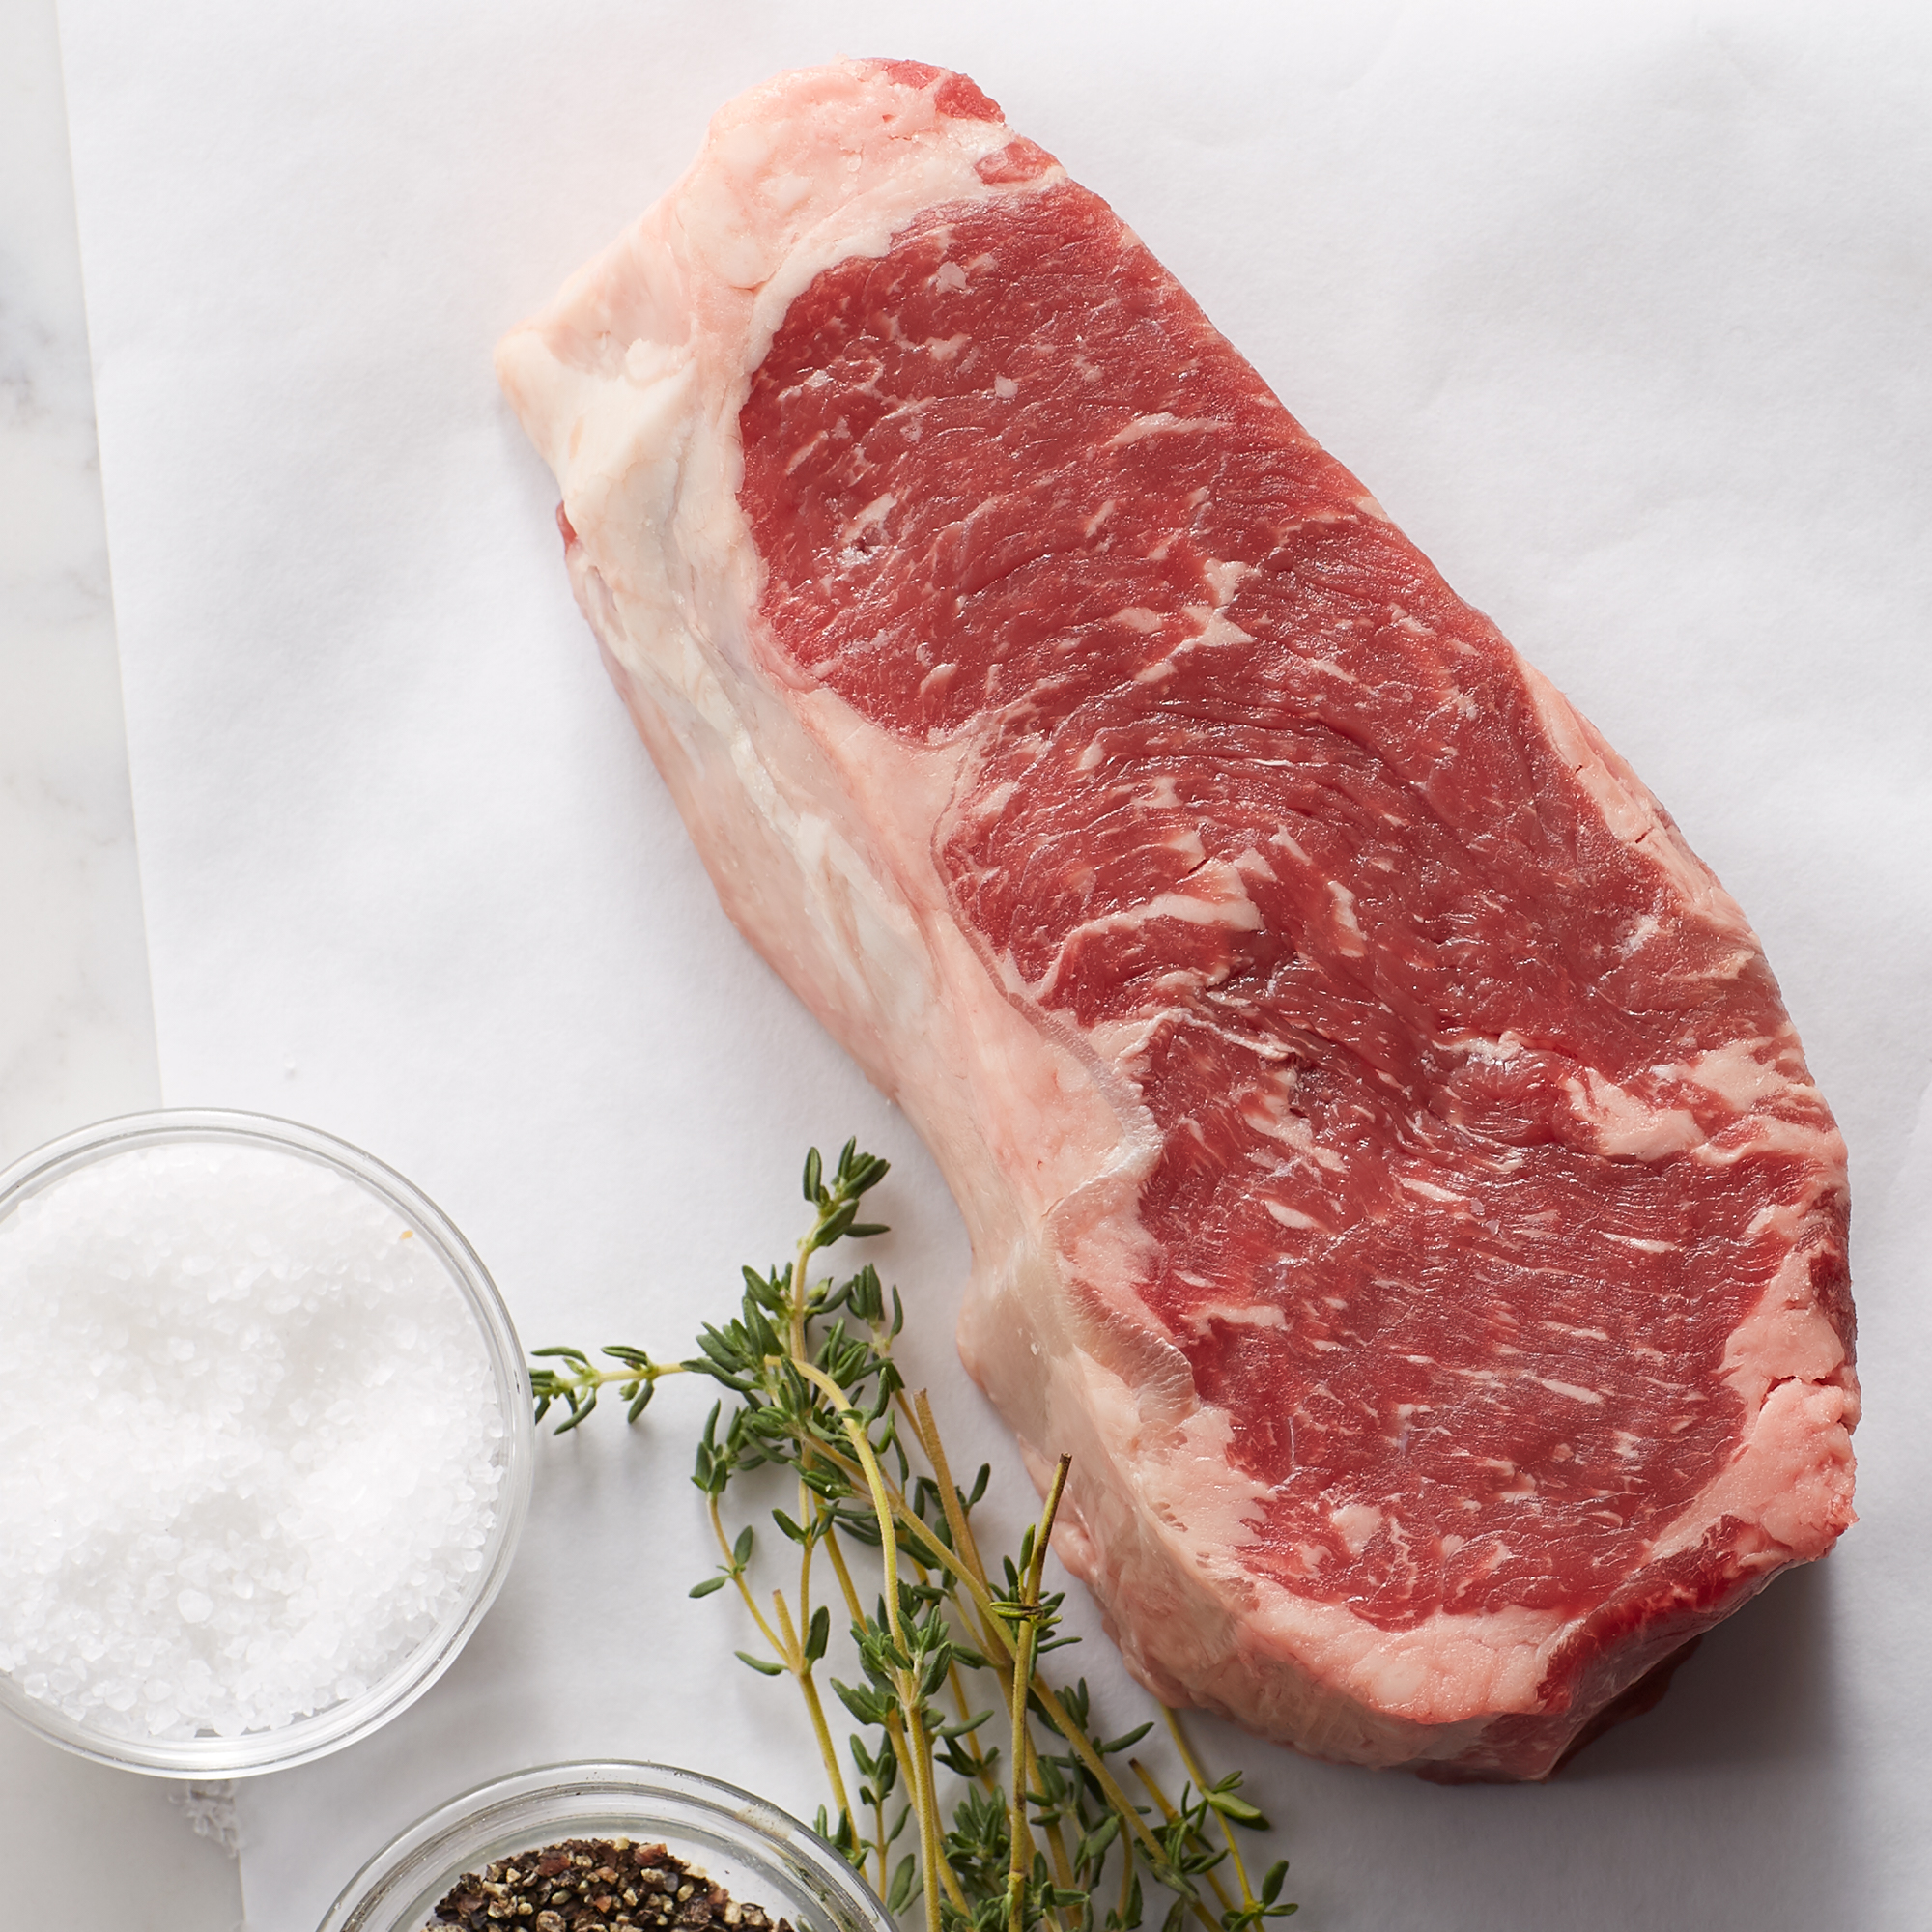 Whether grilled, broiled, sautéed or pan-fried, our New York Strip is thick, juicy and bursting with flavor. Ships frozen and raw